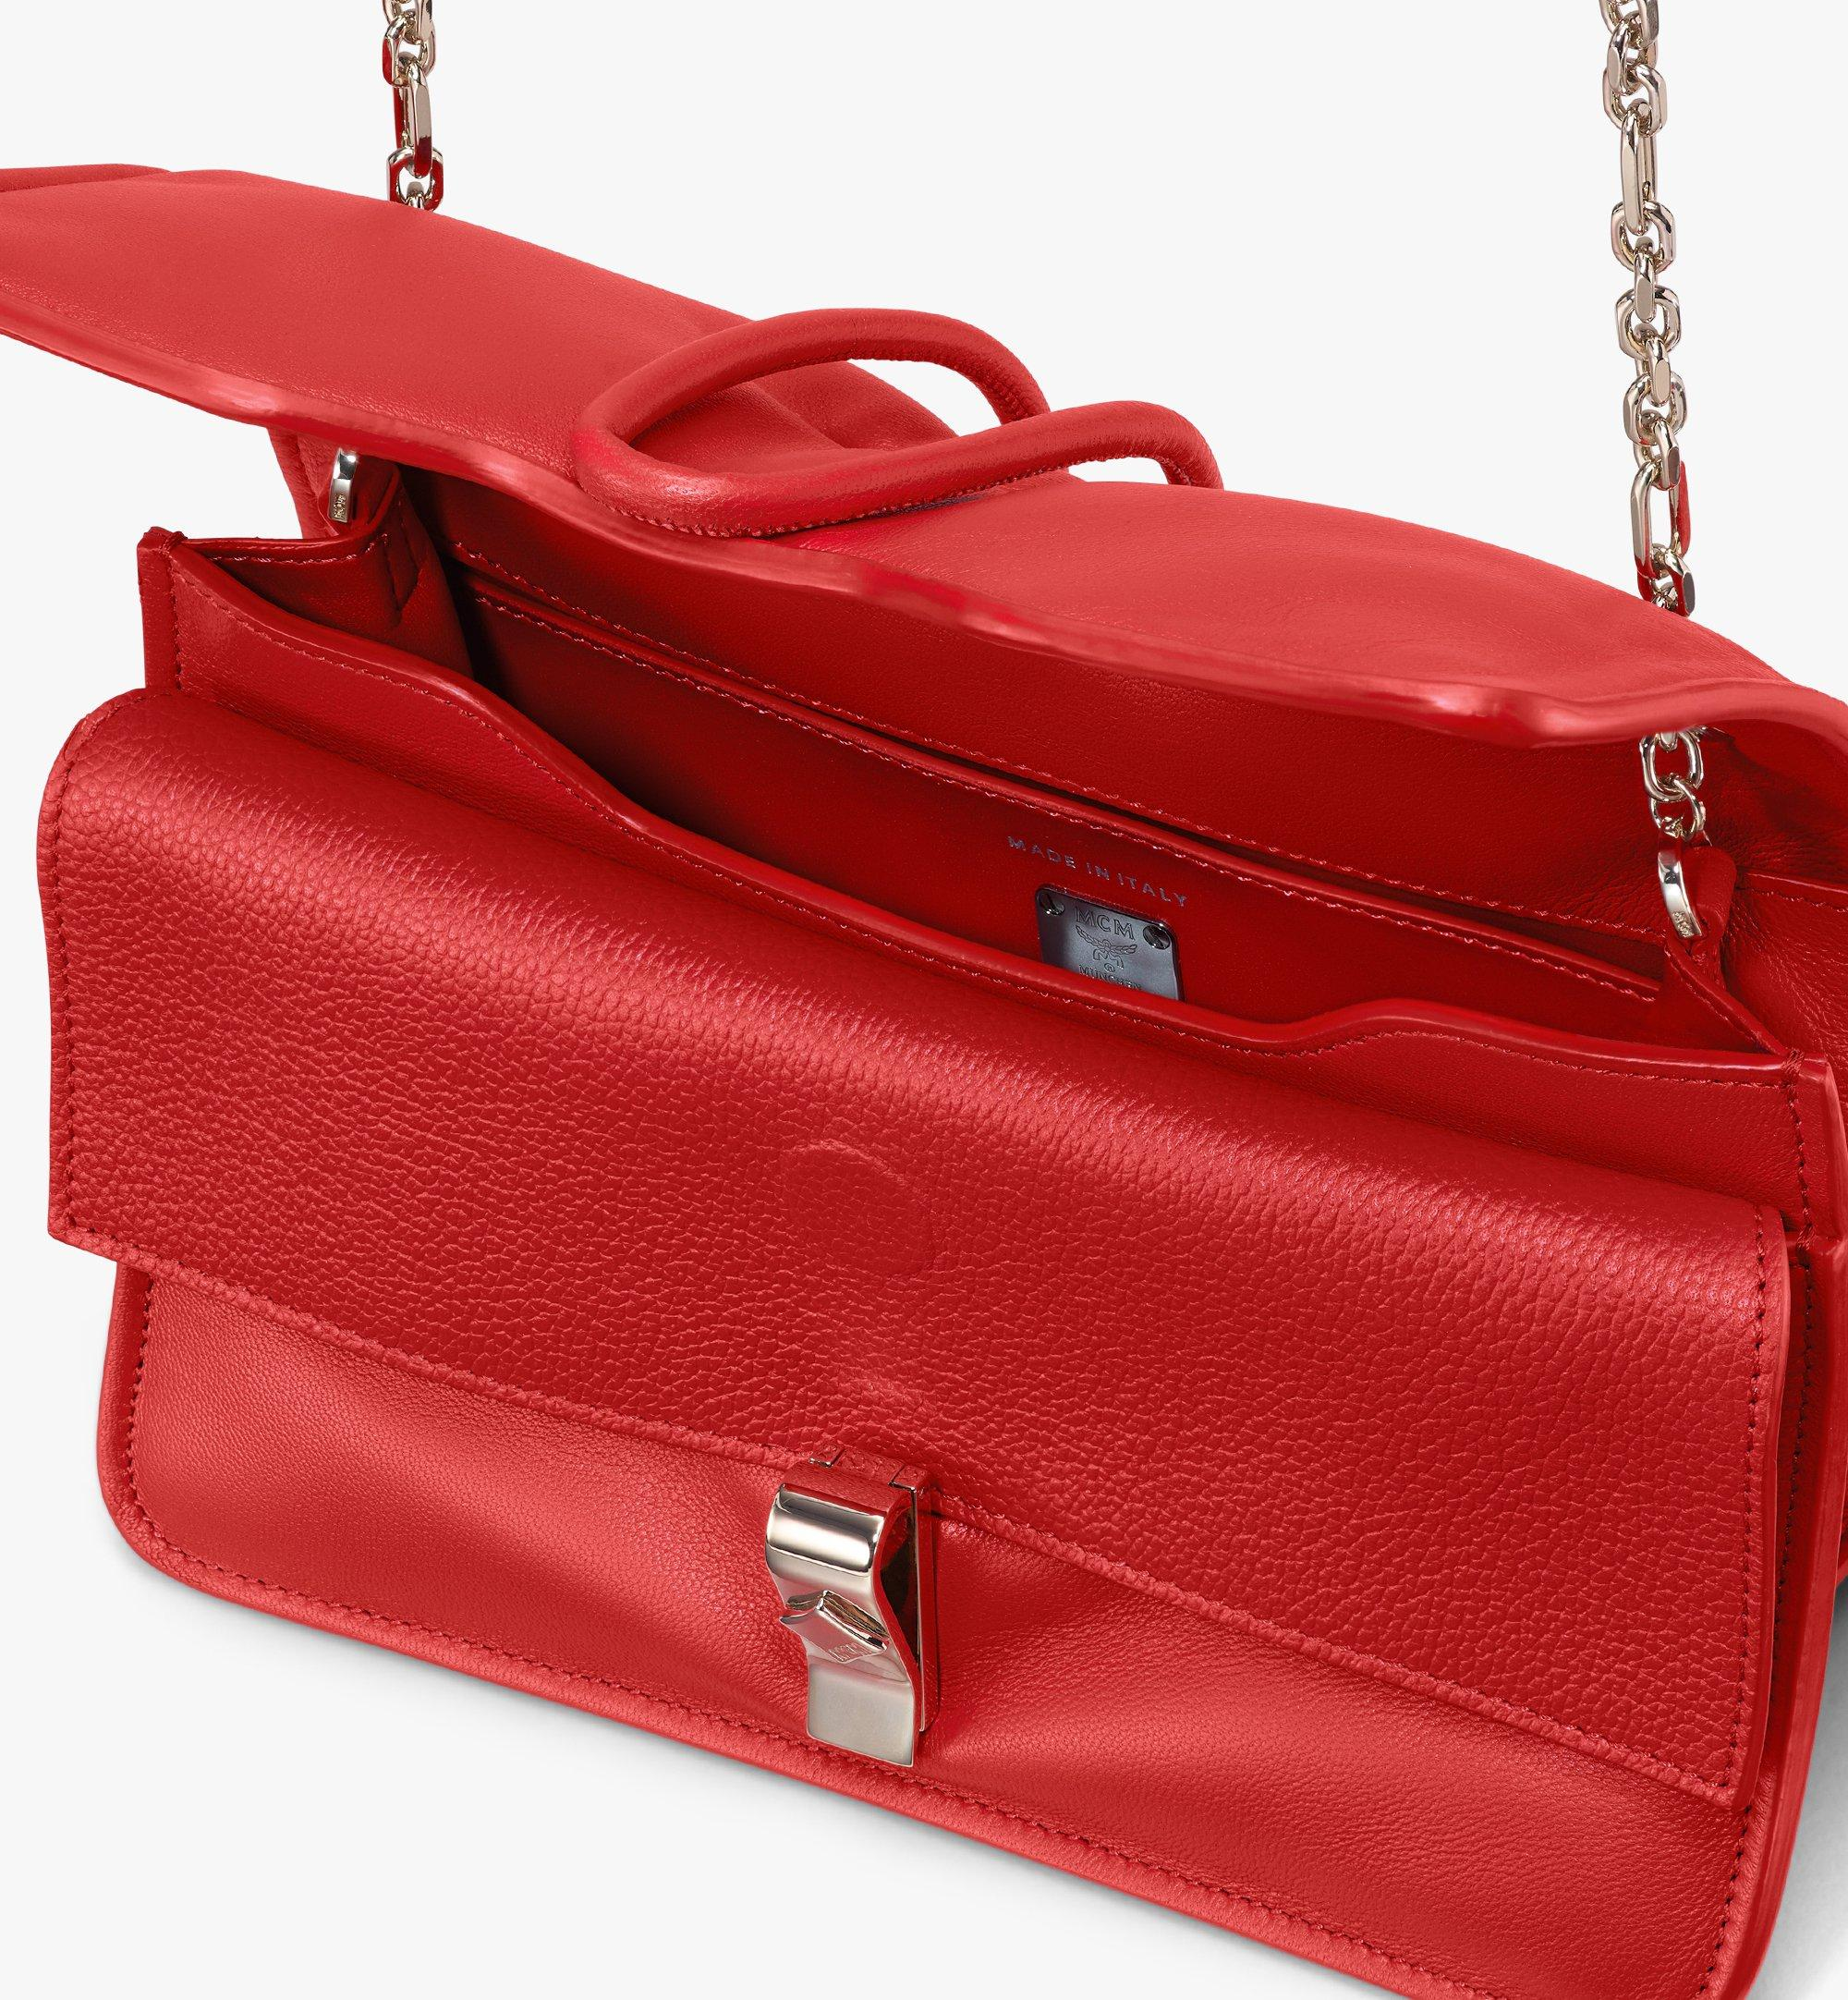 MCM Candy Shoulder Bag in Nappa Leather Red MWSASCY05R4001 Alternate View 4